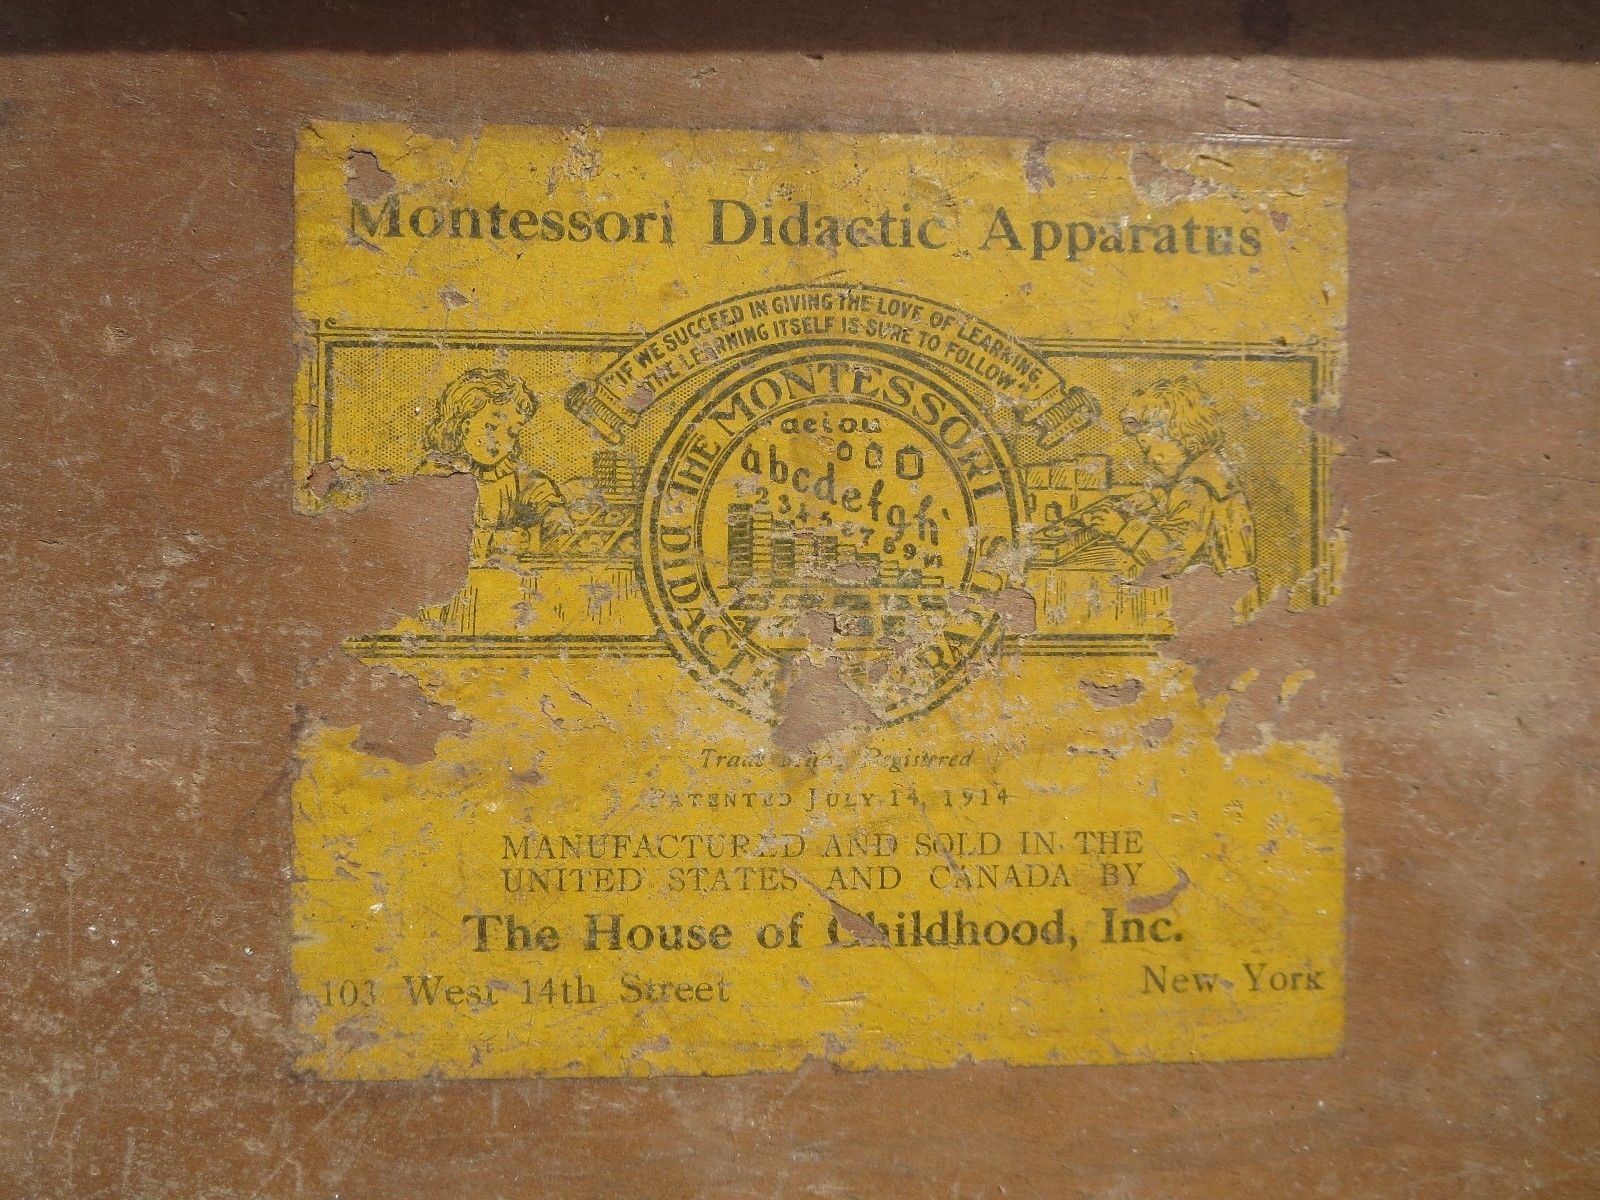 """Dr. Montessori's patent rights in the apparatus are controlled, for the United States and Canada, by The House of Childhood, Inc."" Noted in  The Montessori Method  by Maria Montessori (April, 1912)"